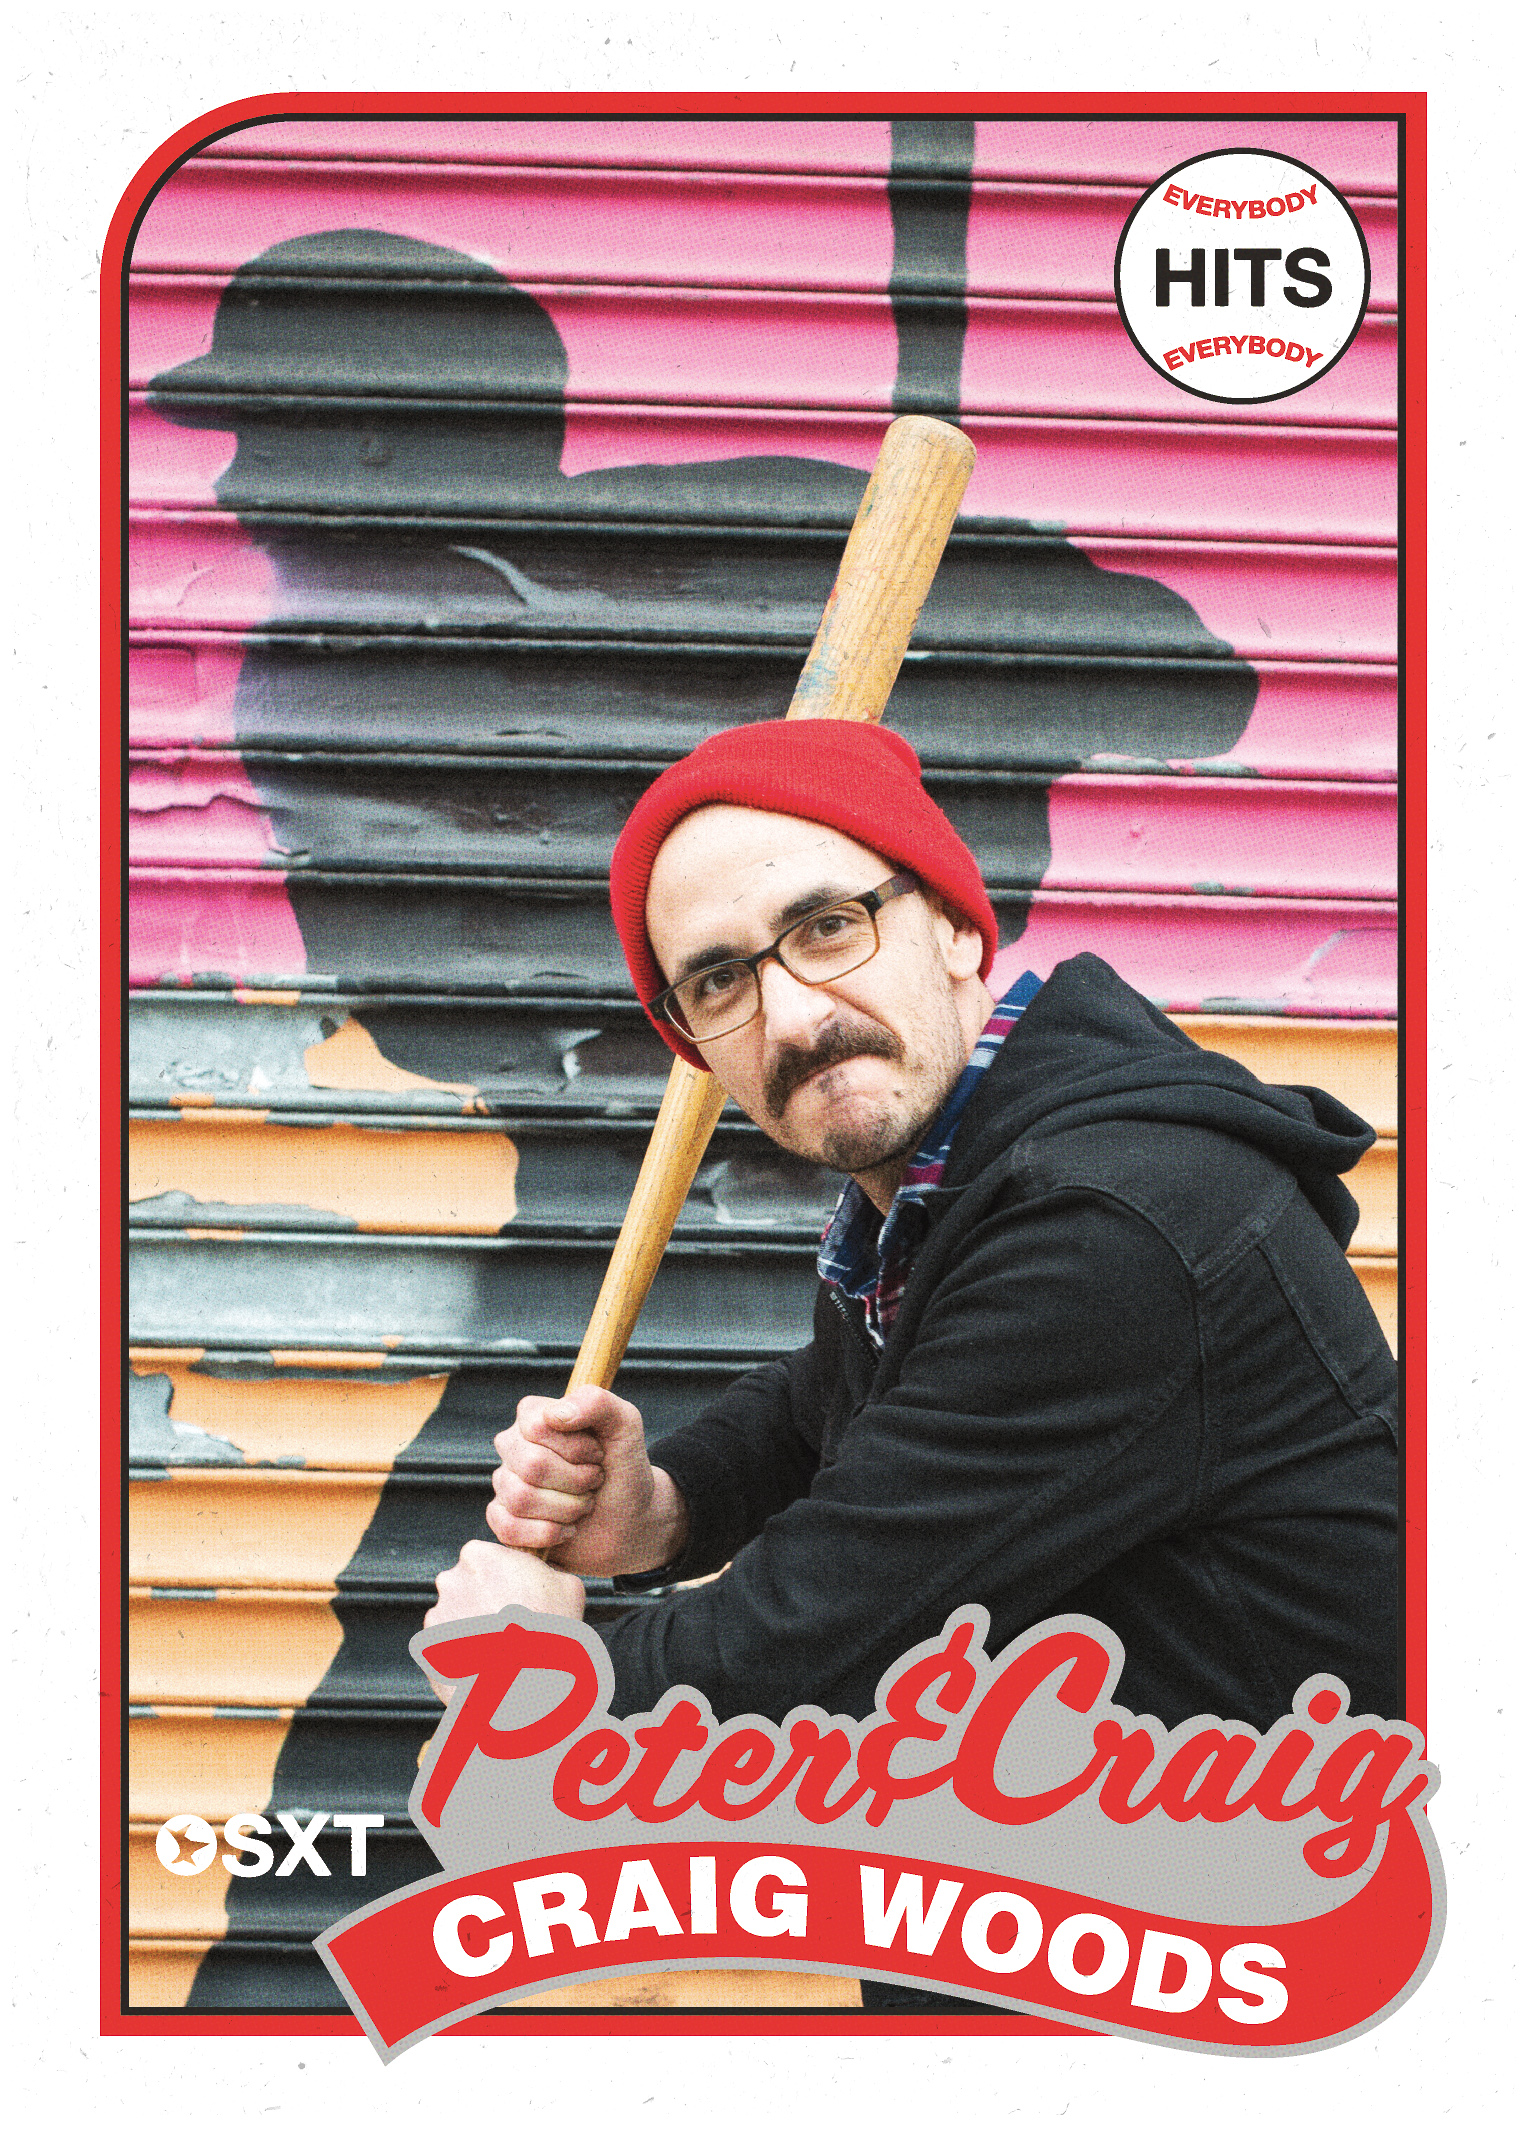 Craig Woods of Peter & Craig